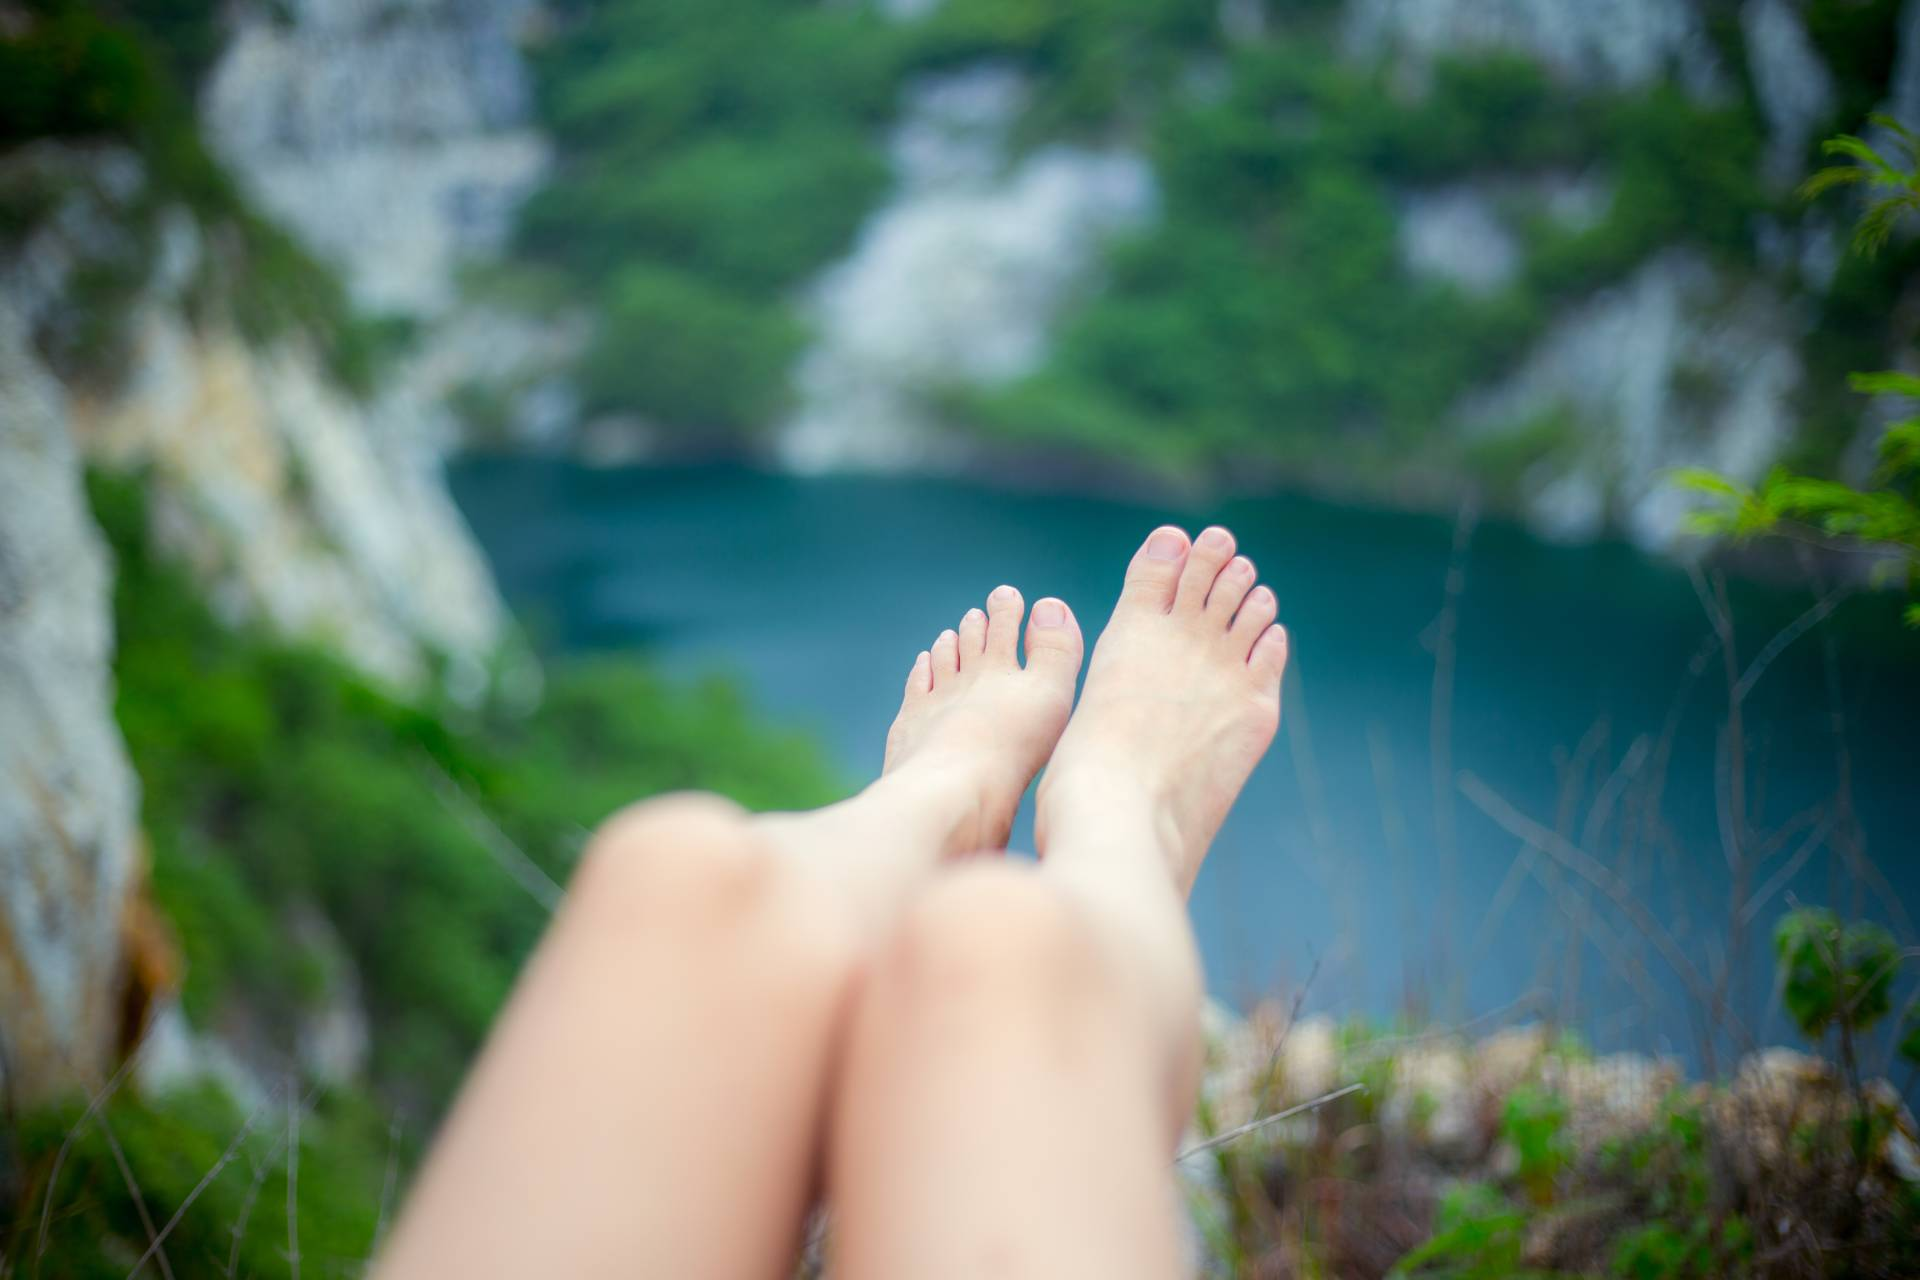 image of feet and toes outside enjoying life